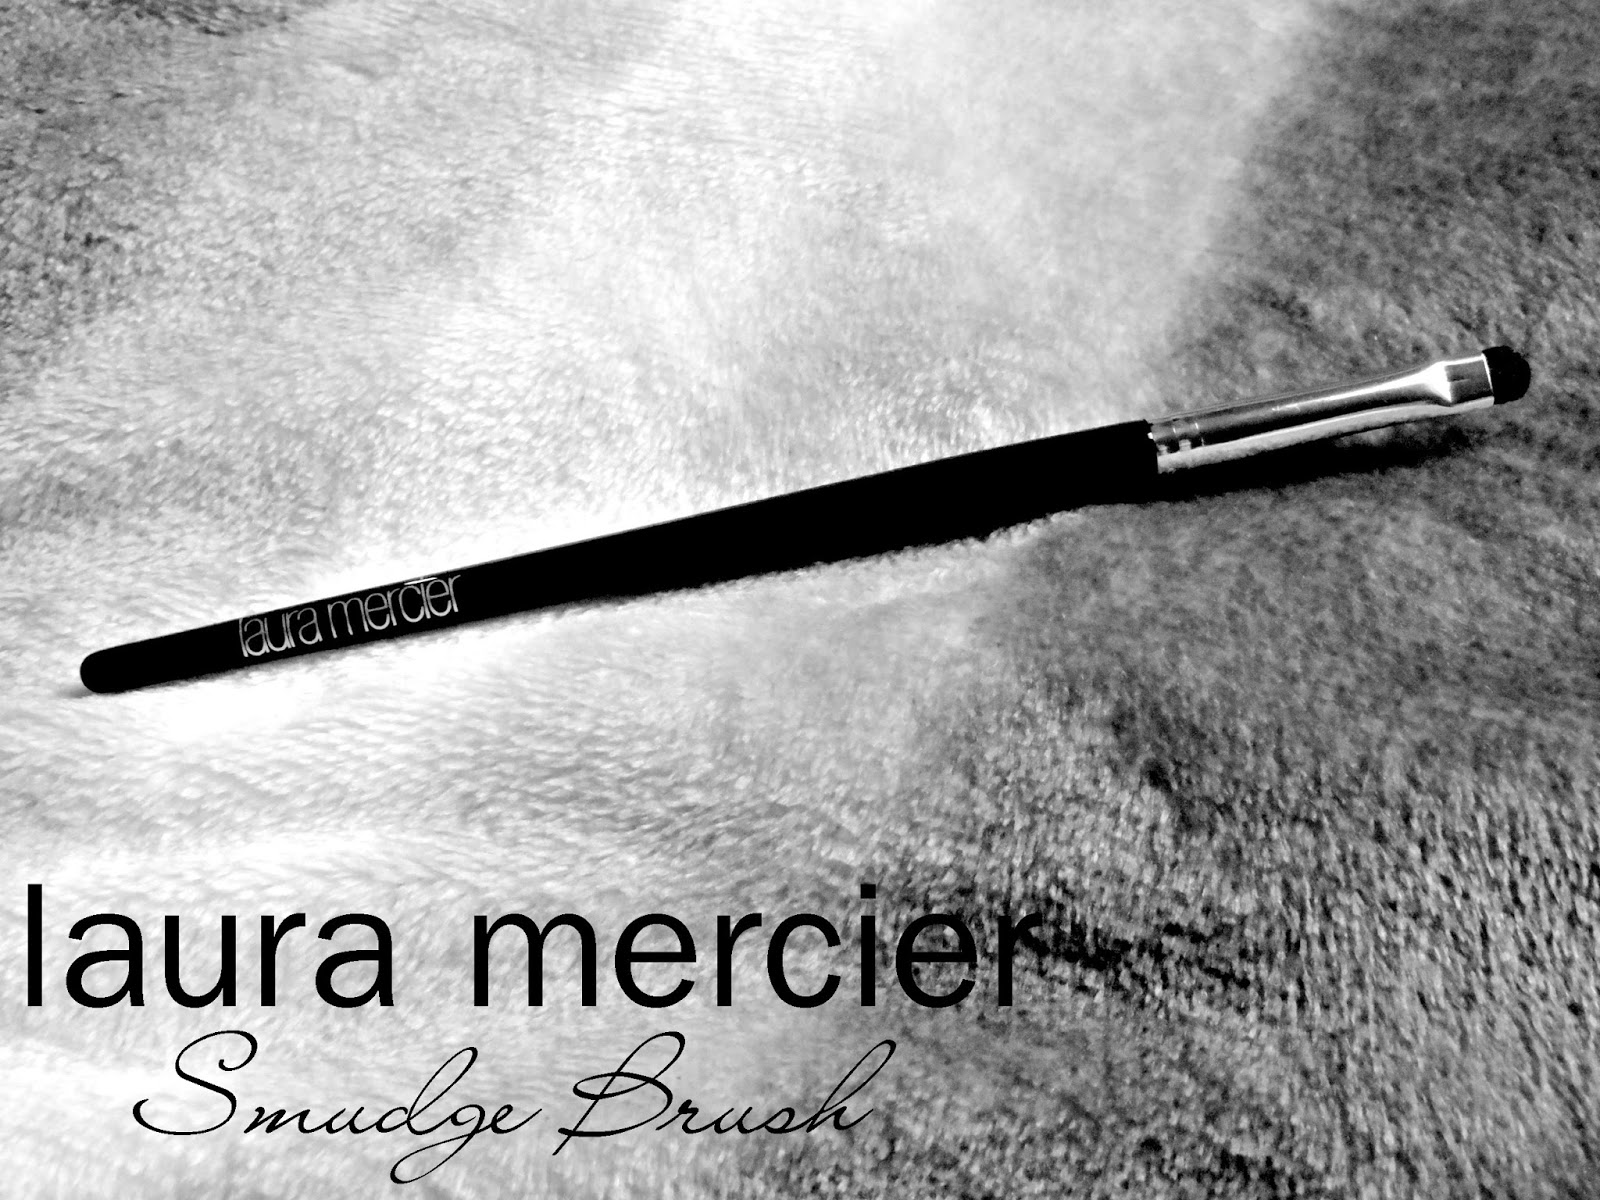 Laura Mercier Smudge Brush Review, Photos